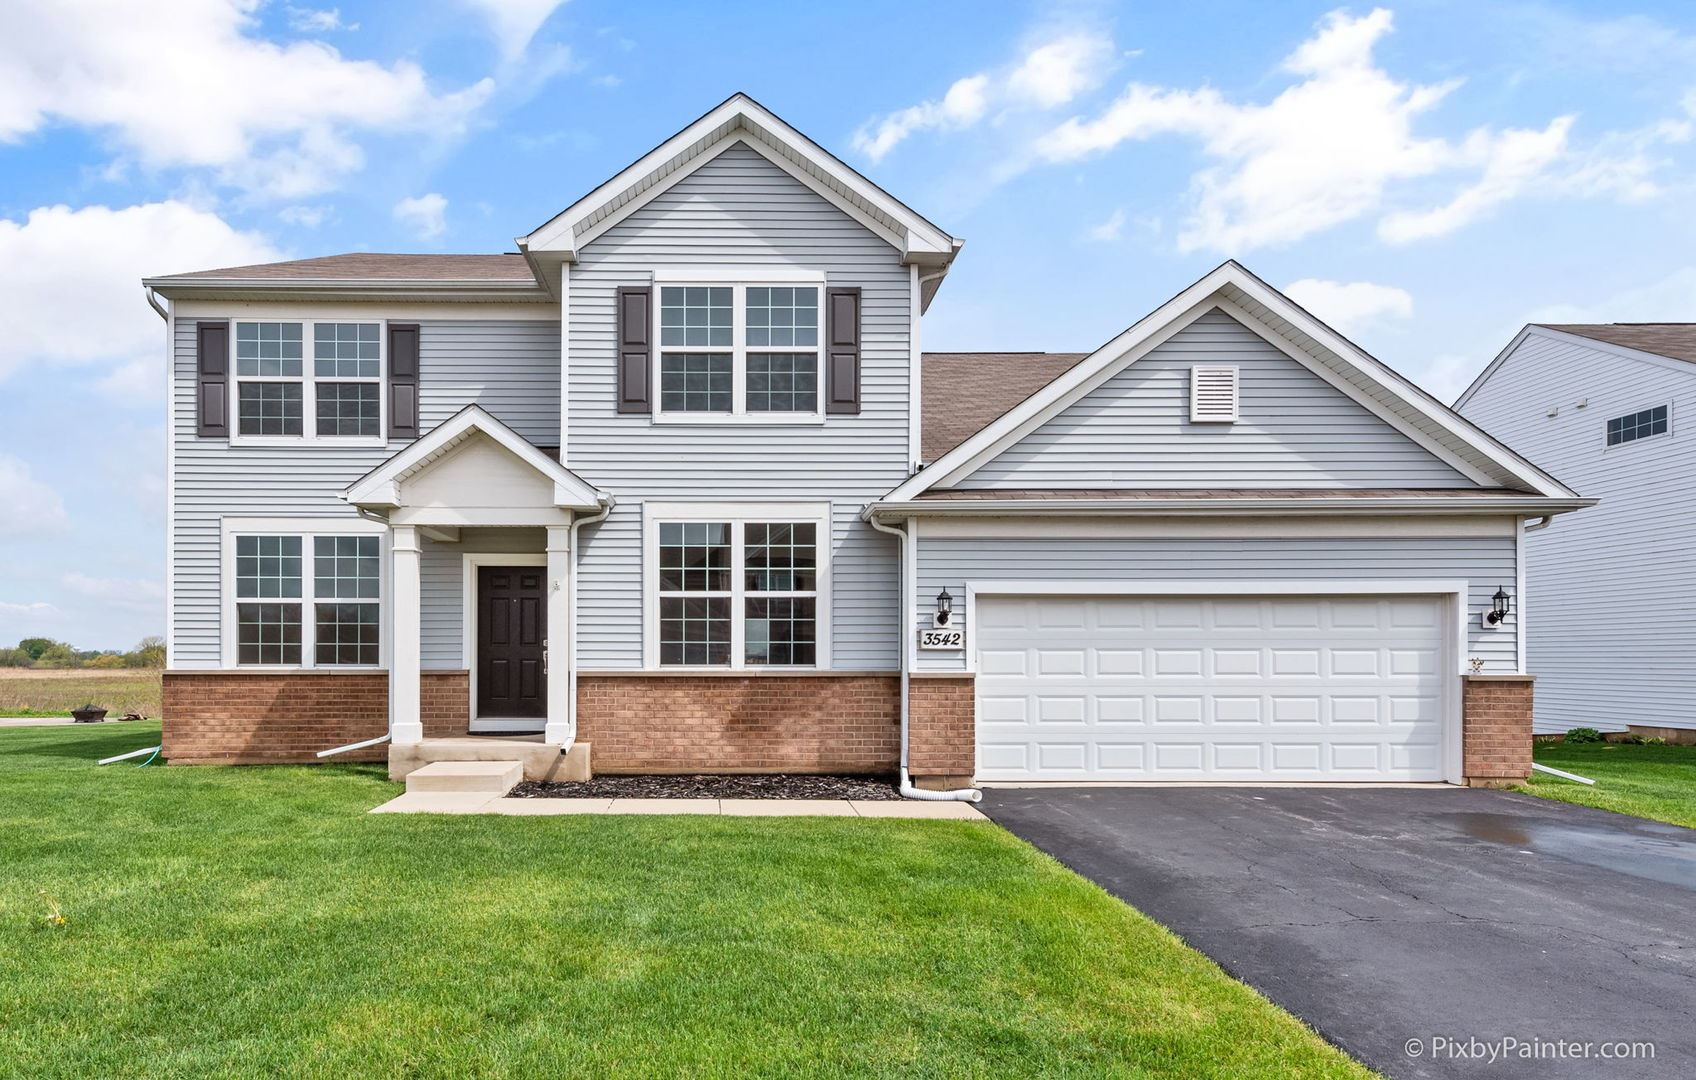 3542 Crestwood Lane, Carpentersville, IL 60110 - #: 10768442